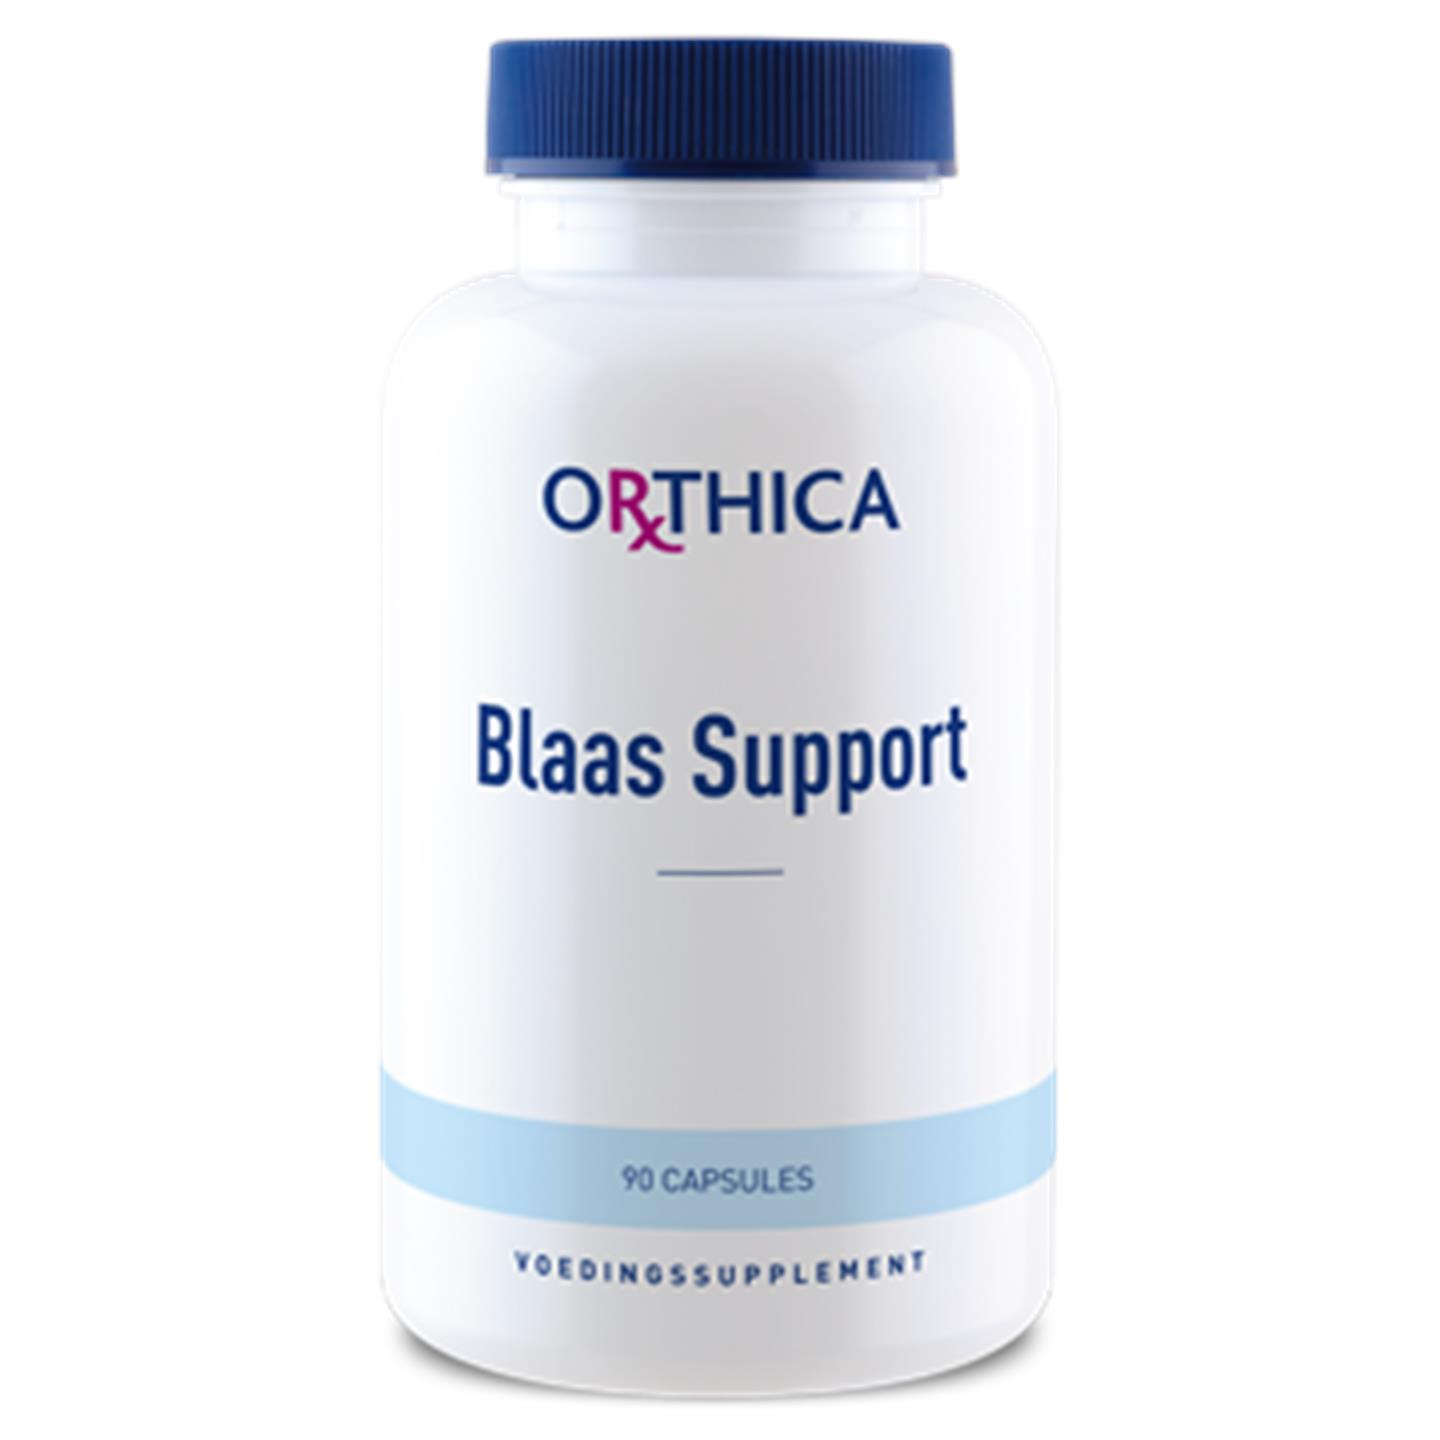 Image of Blaas Support